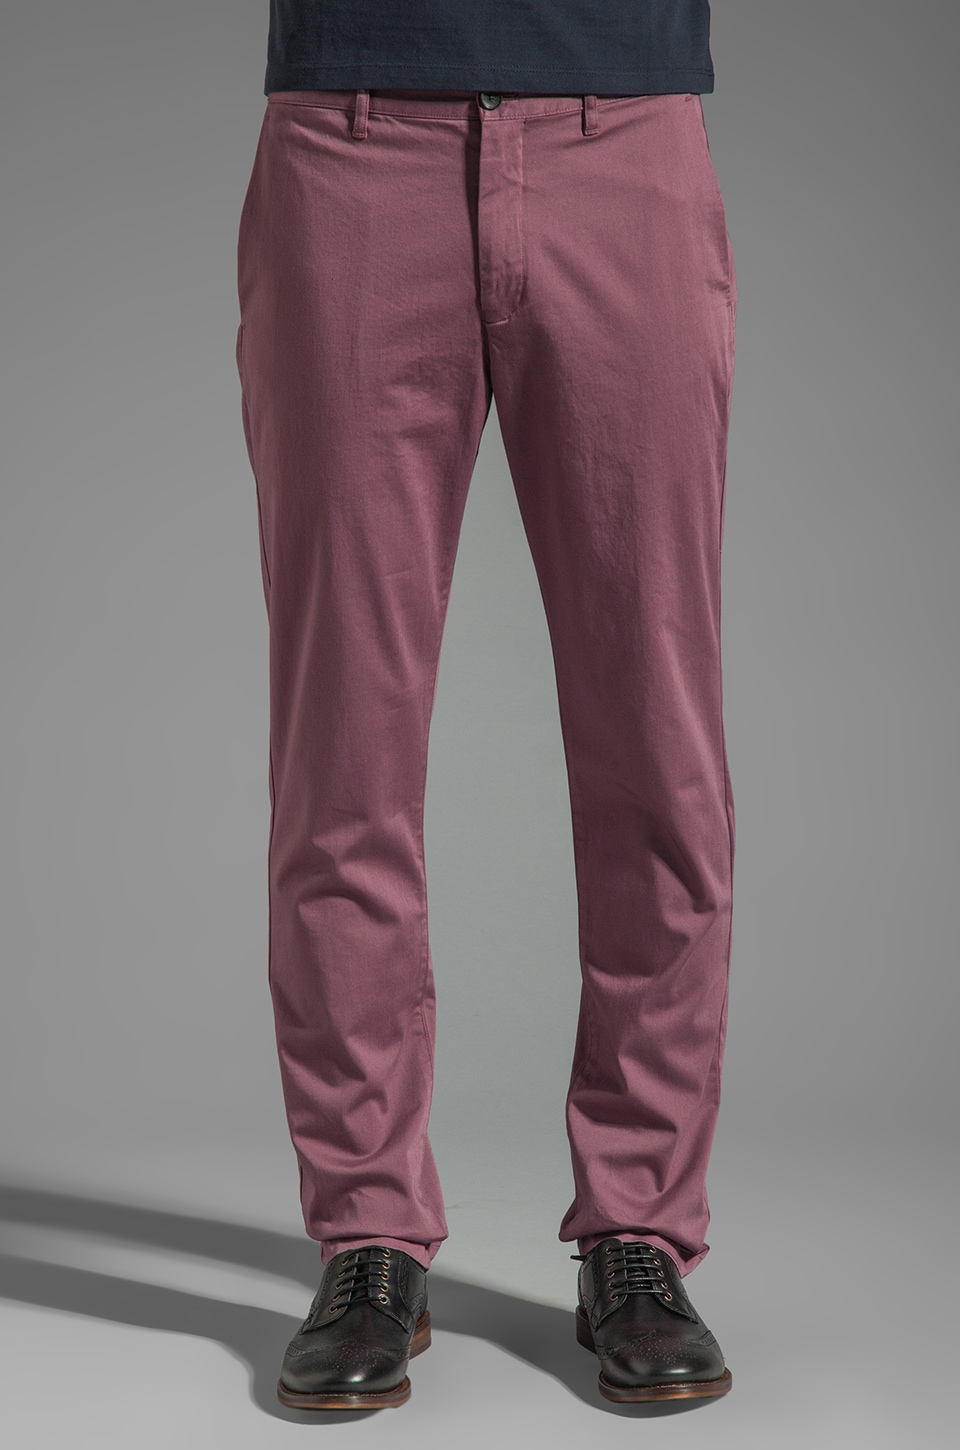 Theory Clifton Zaine Trouser in Capra